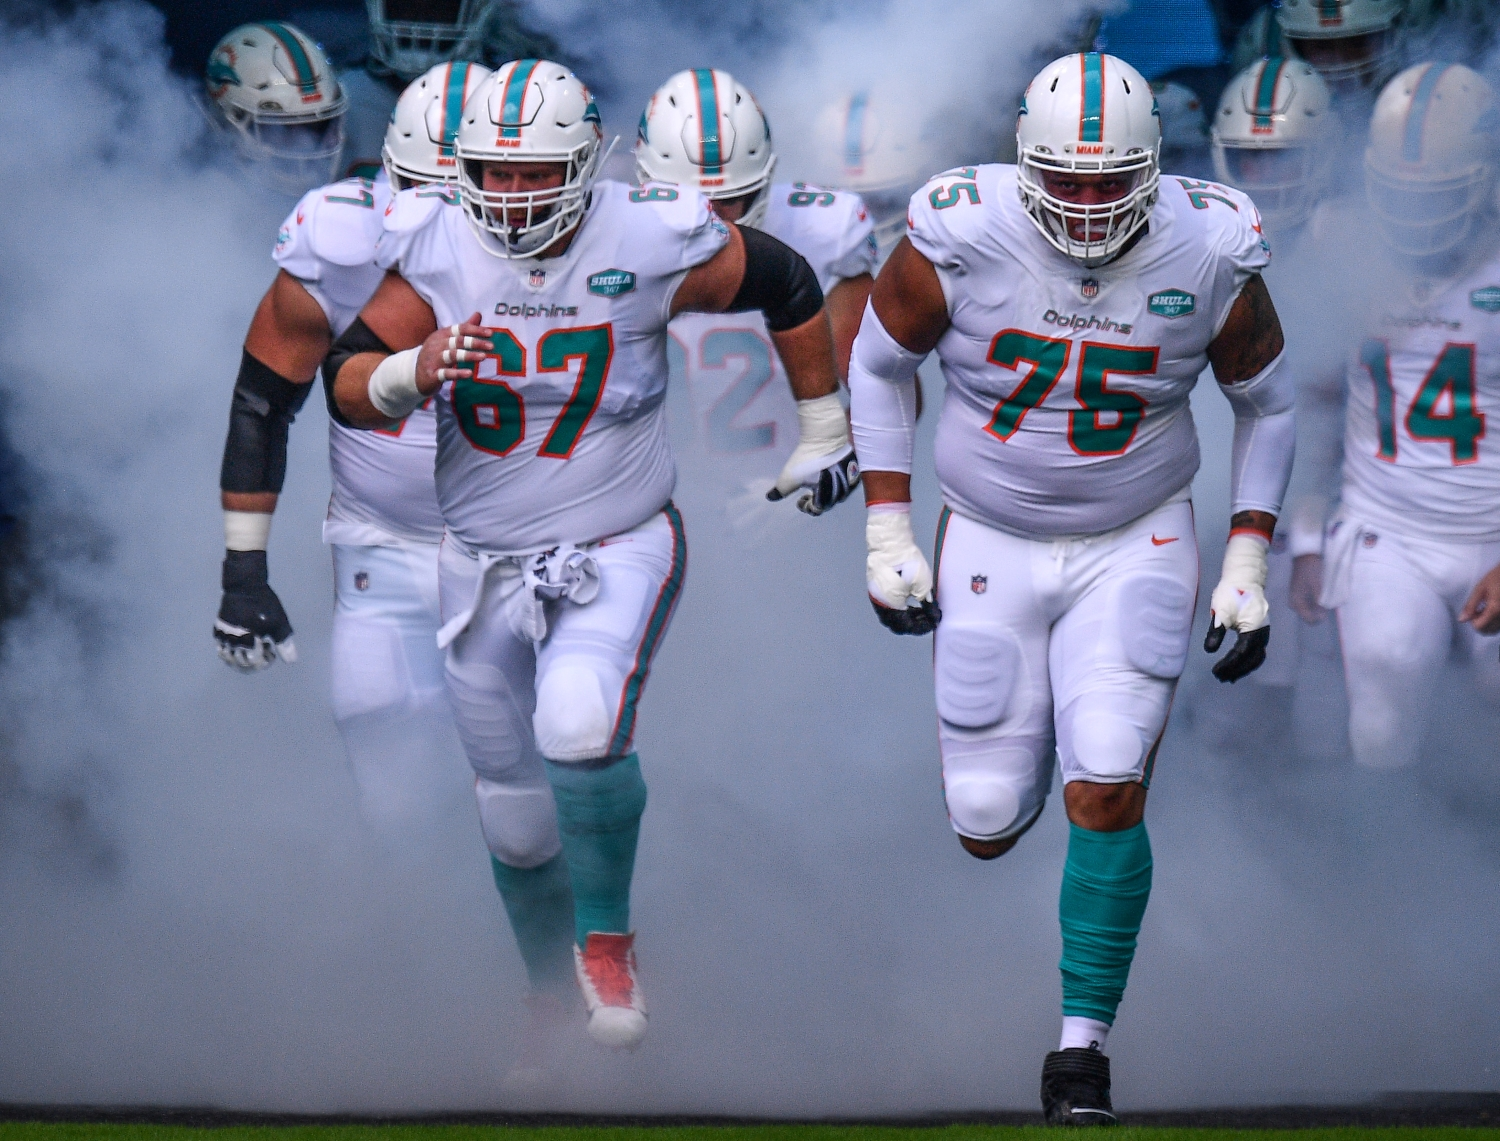 The Miami Dolphins Just Dropped a Major Hint About Their NFL Draft Plans by Ending Another Failed Experiment